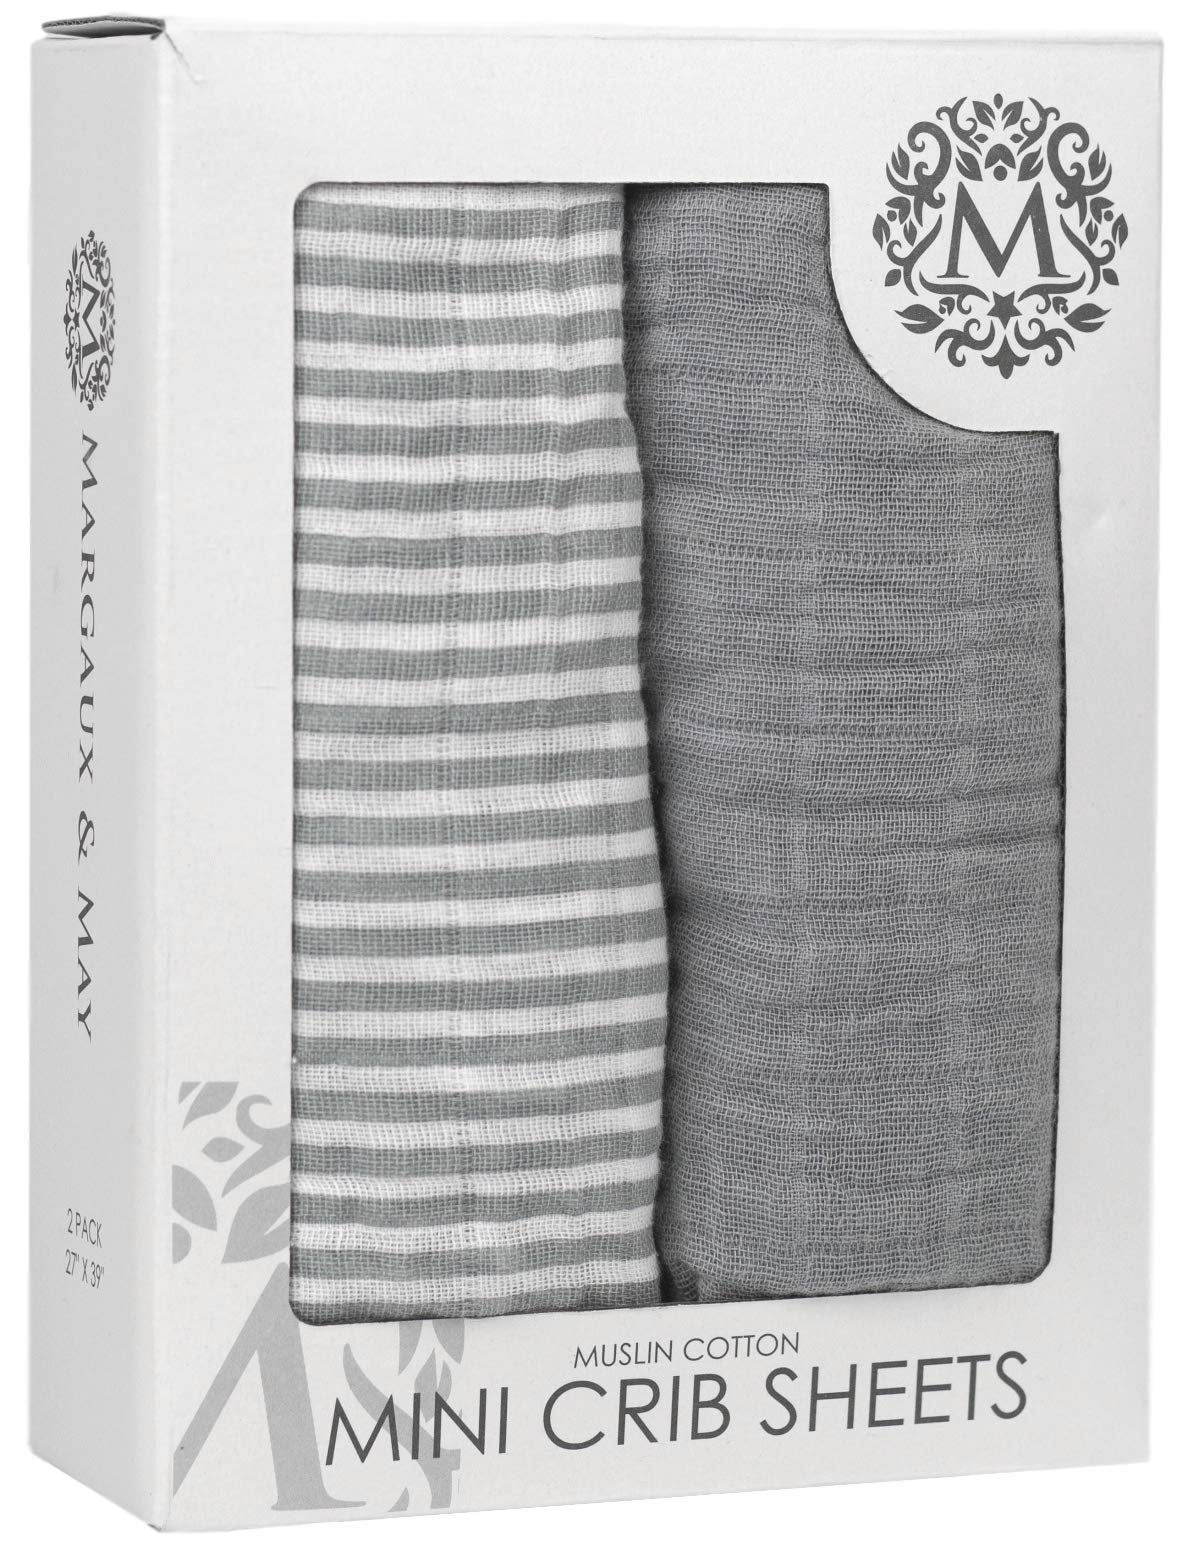 Premium Graco Pack n Play Mini Crib Sheets | 100% Muslin Cotton Pack and Play Fitted Sheet Set | 2 Pack | Perfect for Graco Playard and Mini Crib Mattress | Grey & Stripes Design - Margaux & May